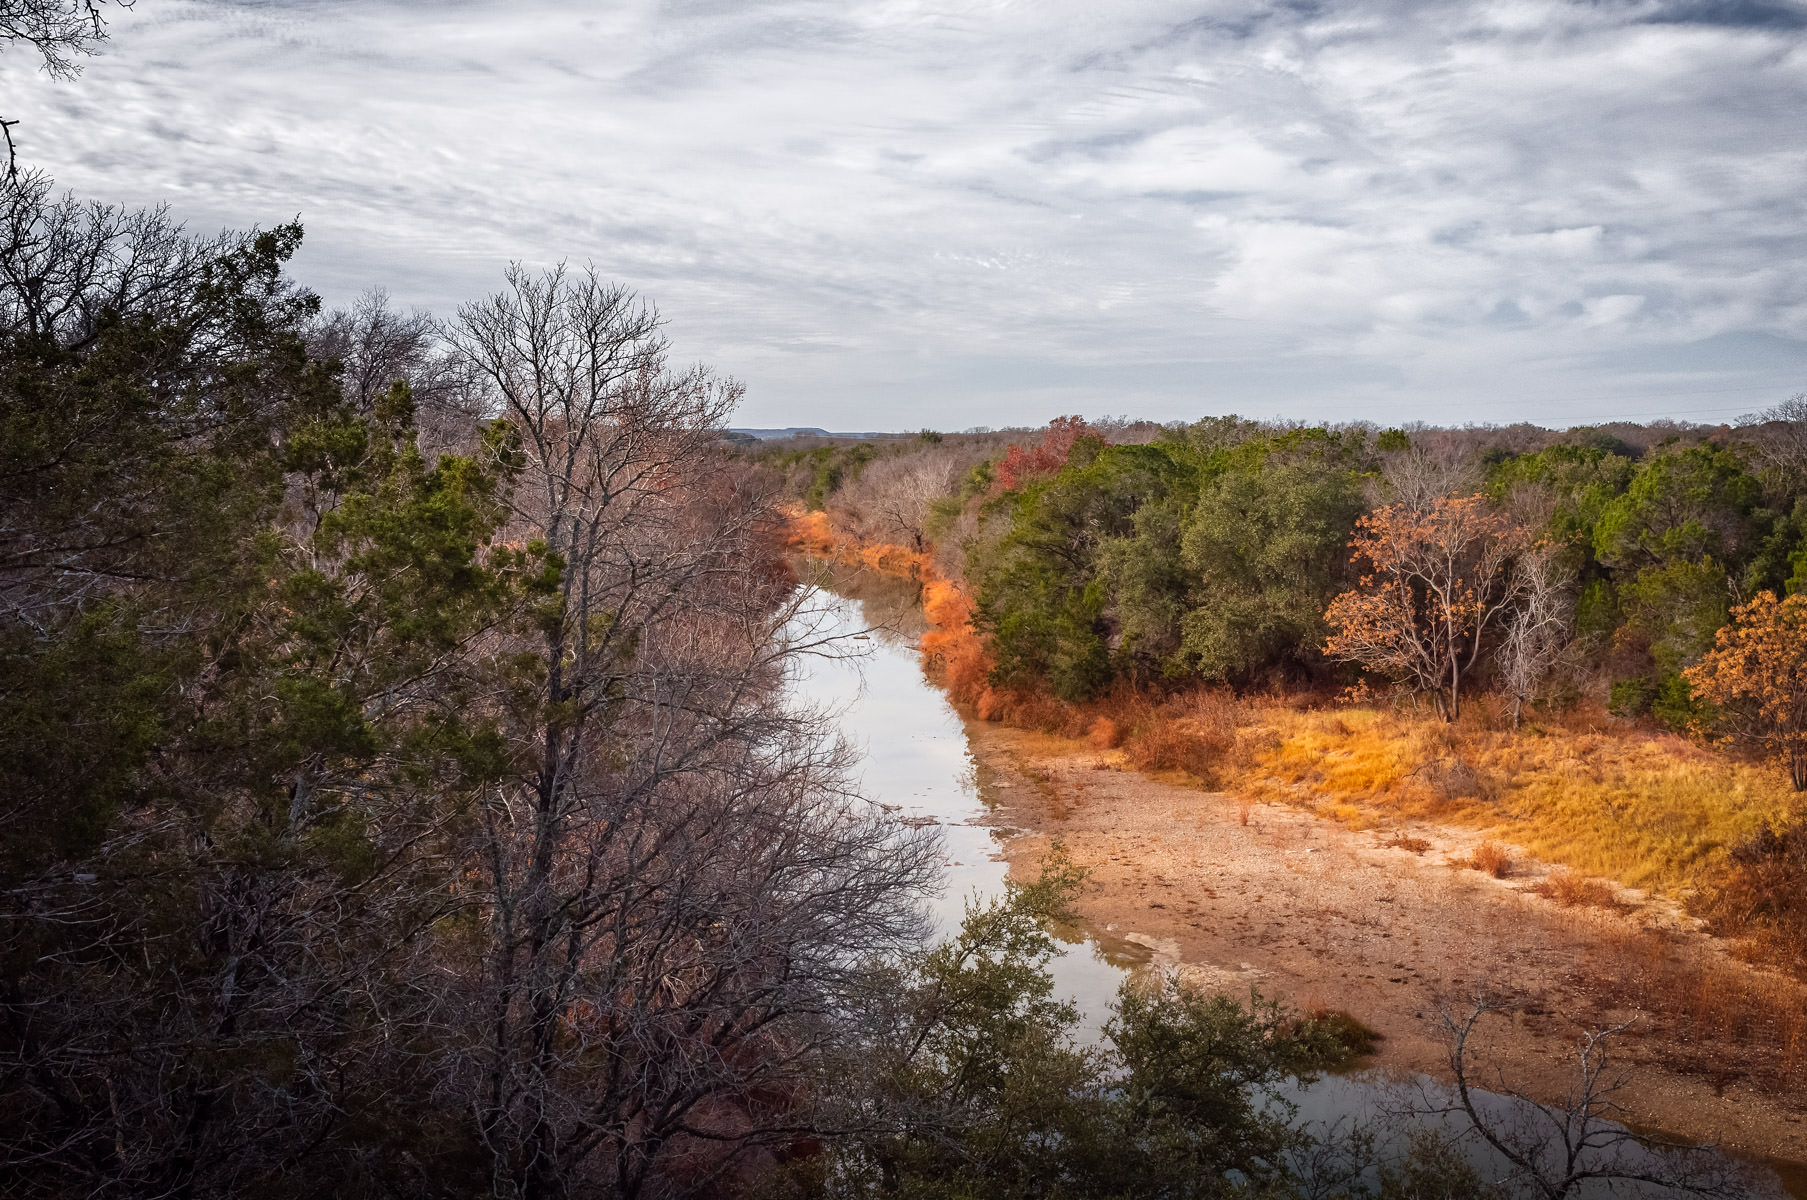 The Paluxy River snakes through Dinosaur Valley State Park near Glen Rose, Texas.